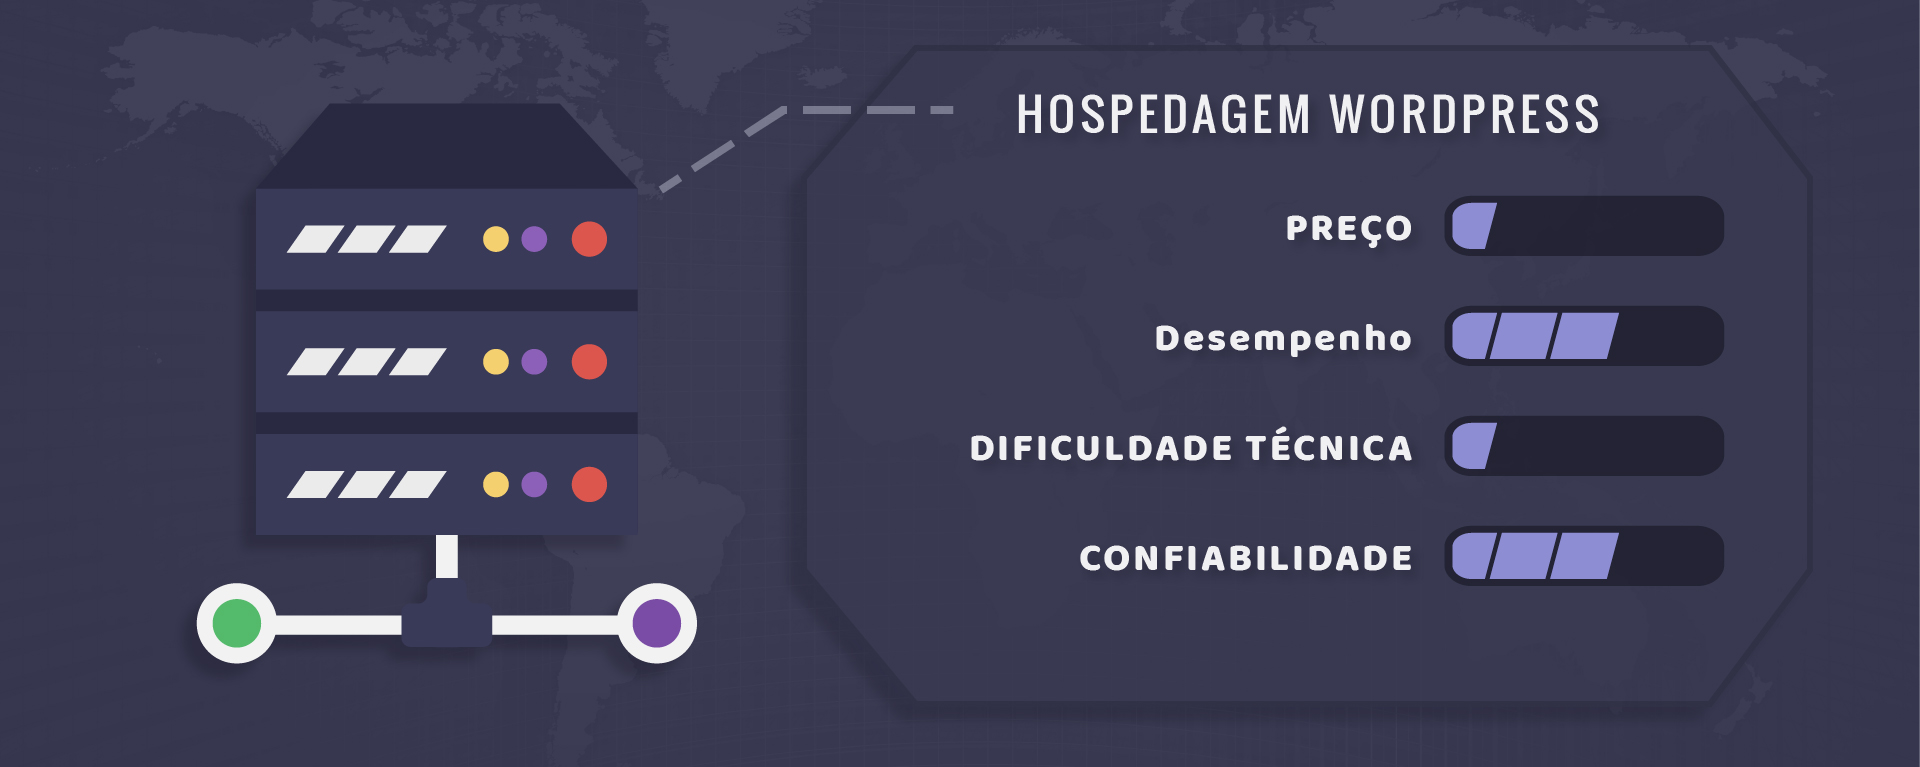 hospedagem de site wordpress